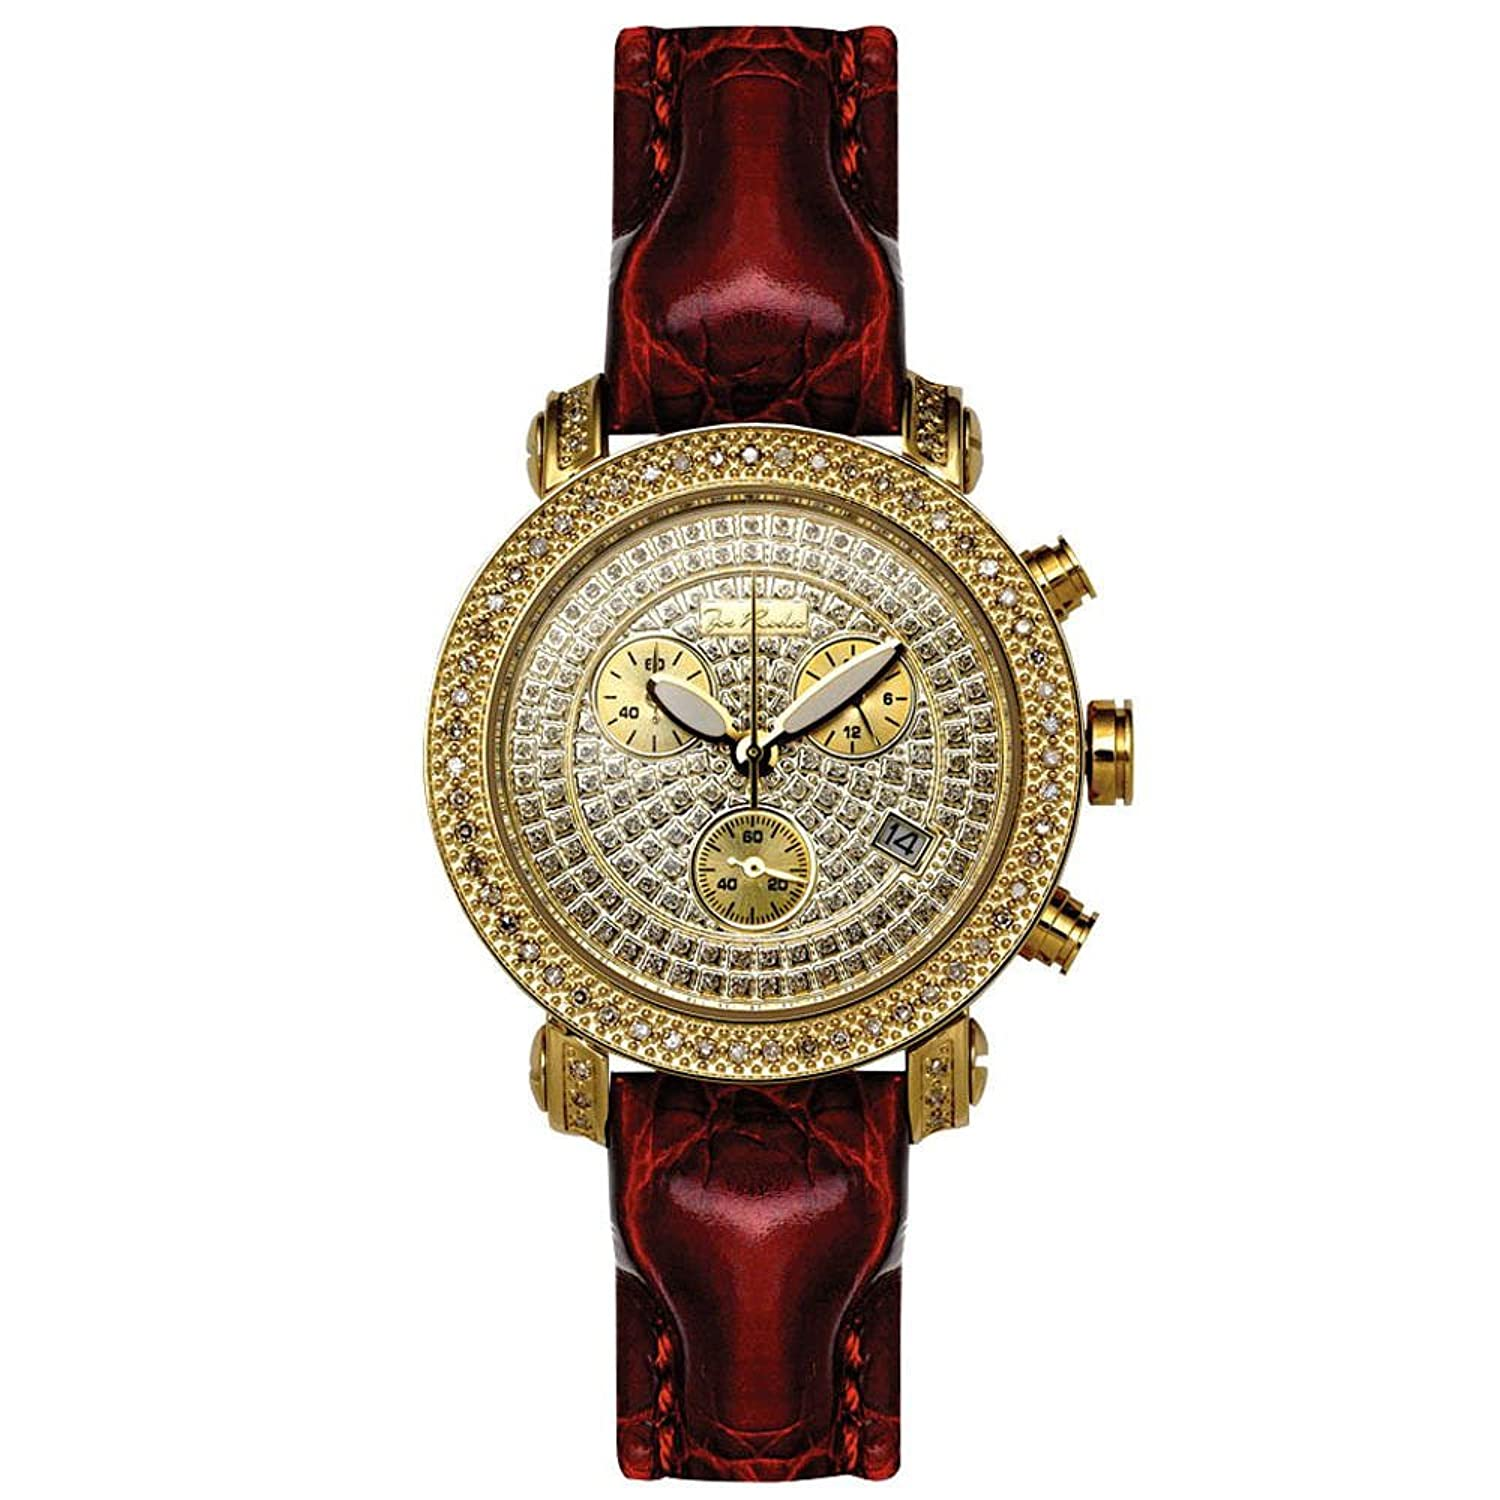 Joe Rodeo Diamant Damen Uhr - PASSION gold 0.6 ctw